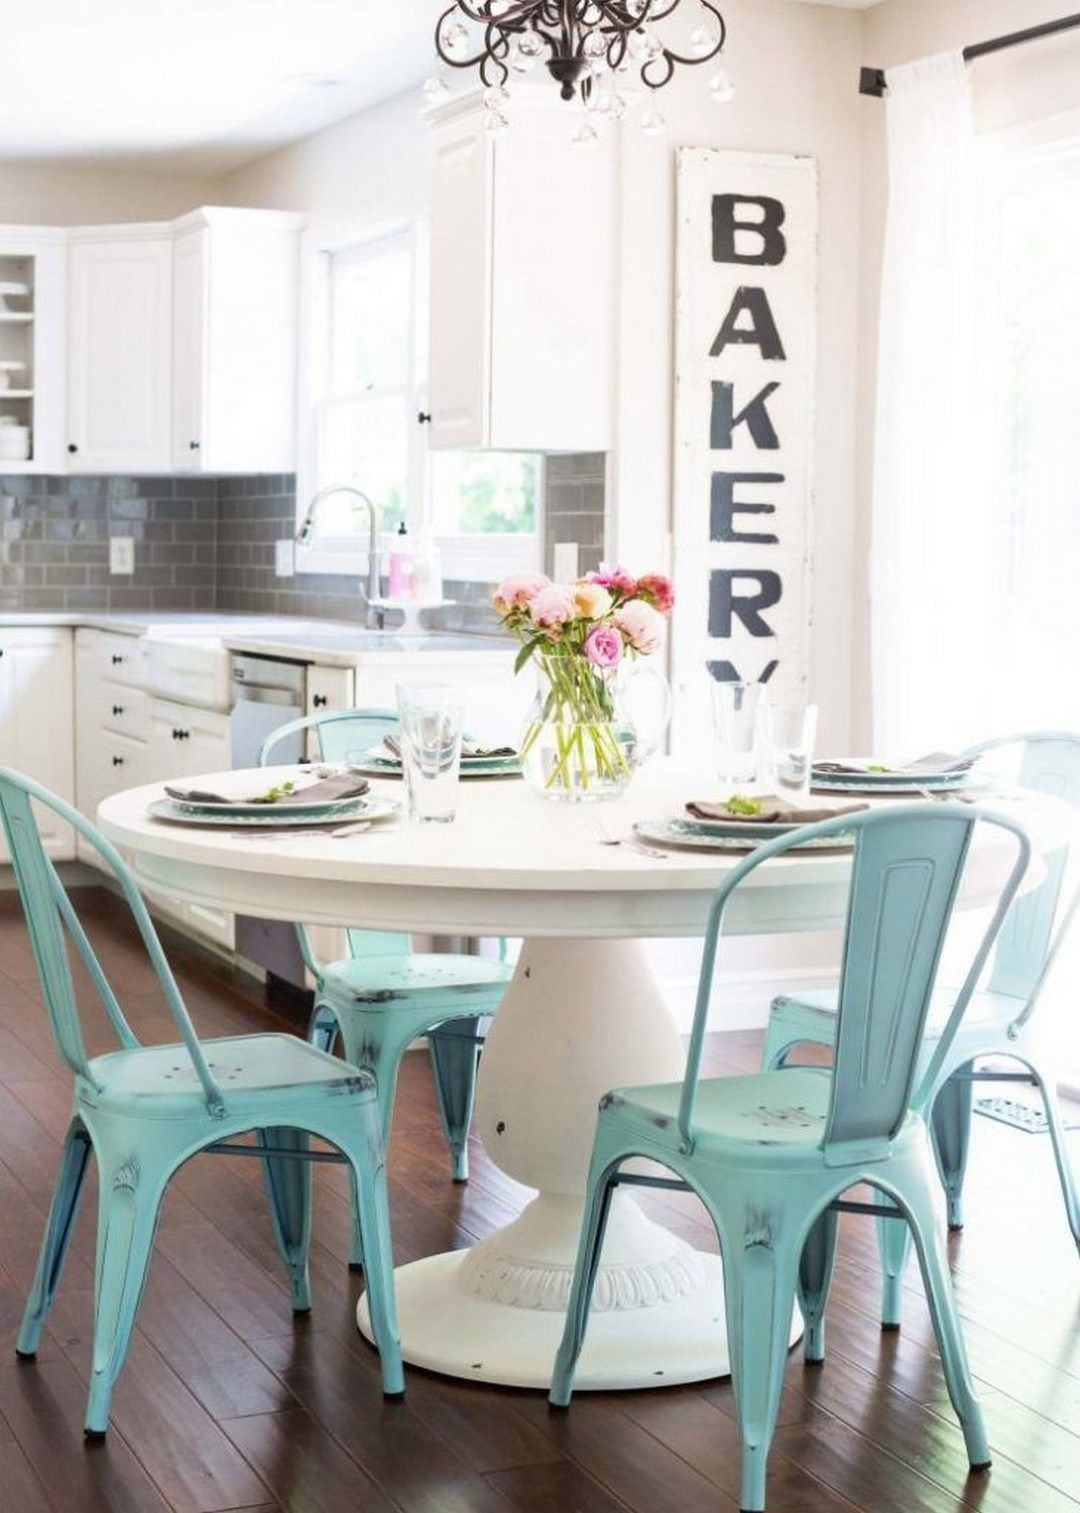 Modern Rustic Farmhouse Dining Room Style 13 Modern Farmhouse Dining Dining Room Style Farmhouse Dining Room